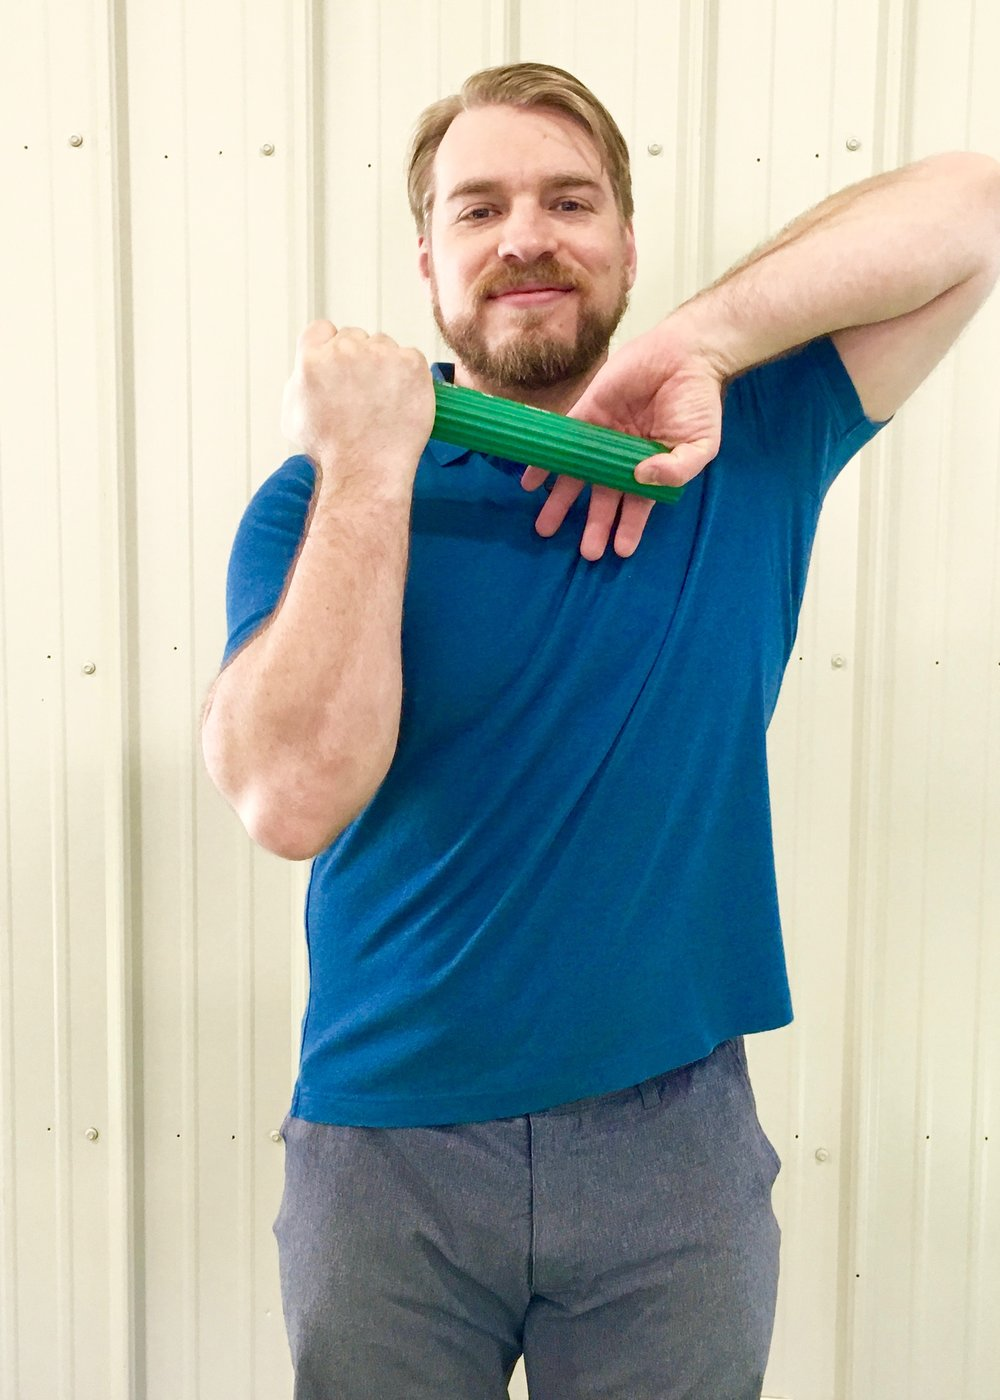 Golfer's Elbow 2 - Lift uninjured elbow high while grabbing bar, palm facing away.